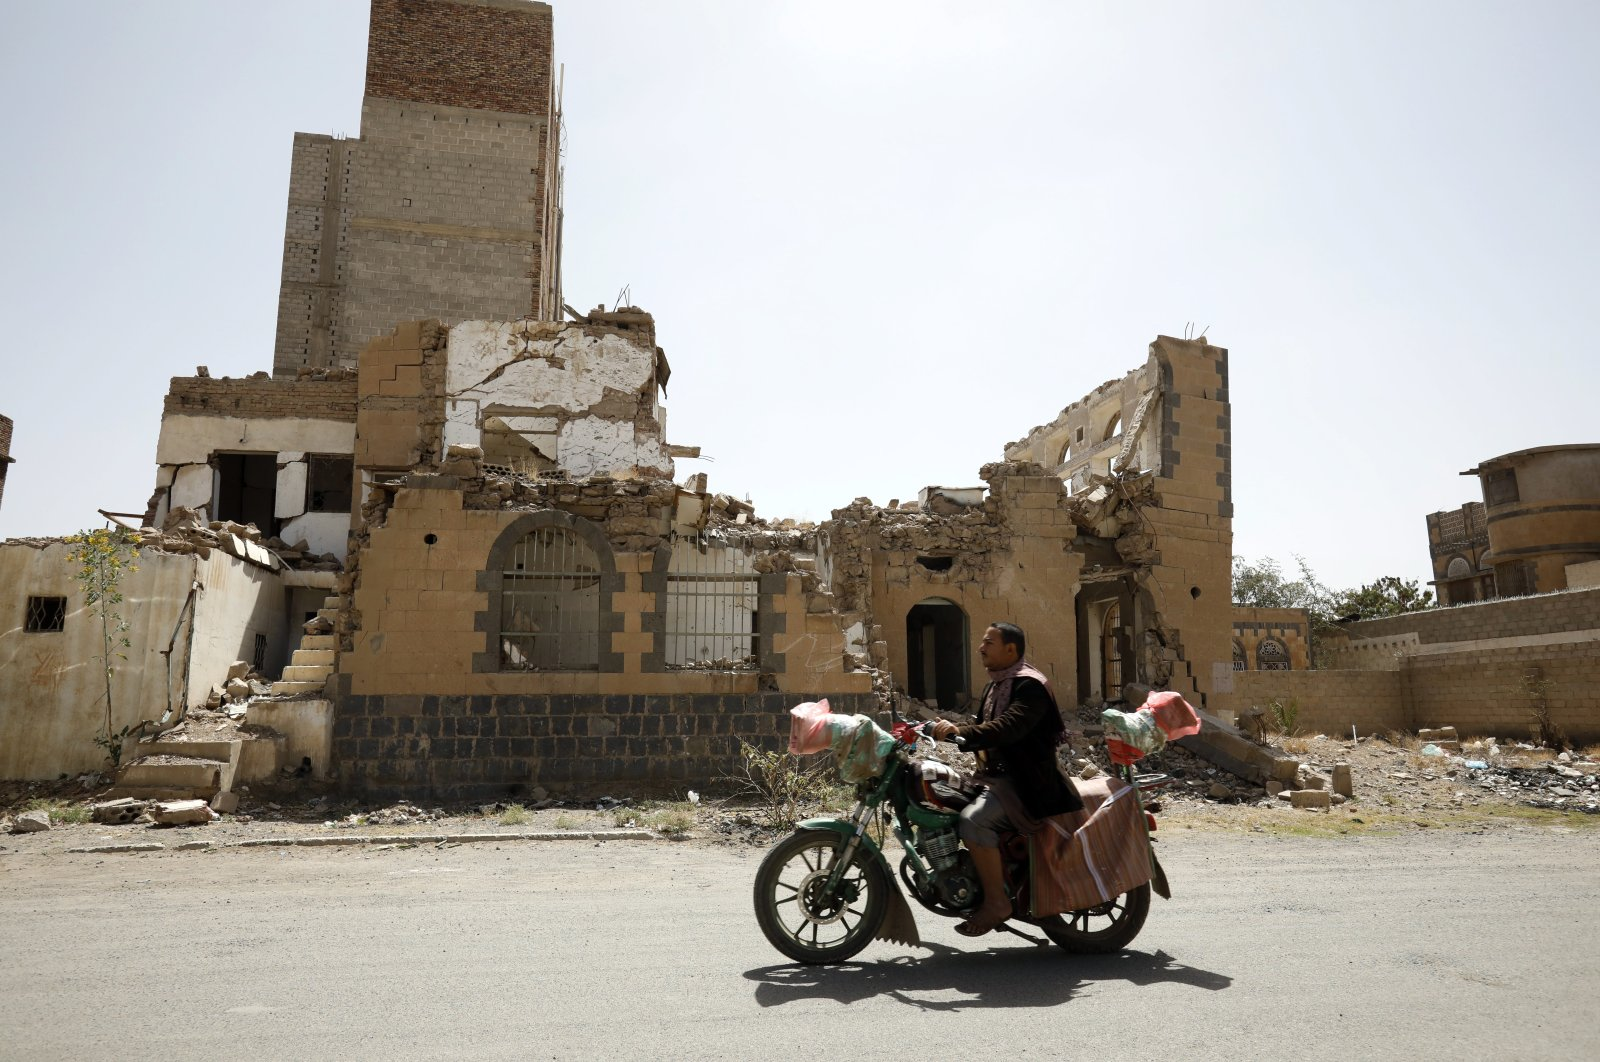 A Yemeni rides a motorbike past a destroyed building targeted by a Saudi-led airstrike at a neighborhood in Sanaa, Yemen, March 26, 2020. (EPA Photo)